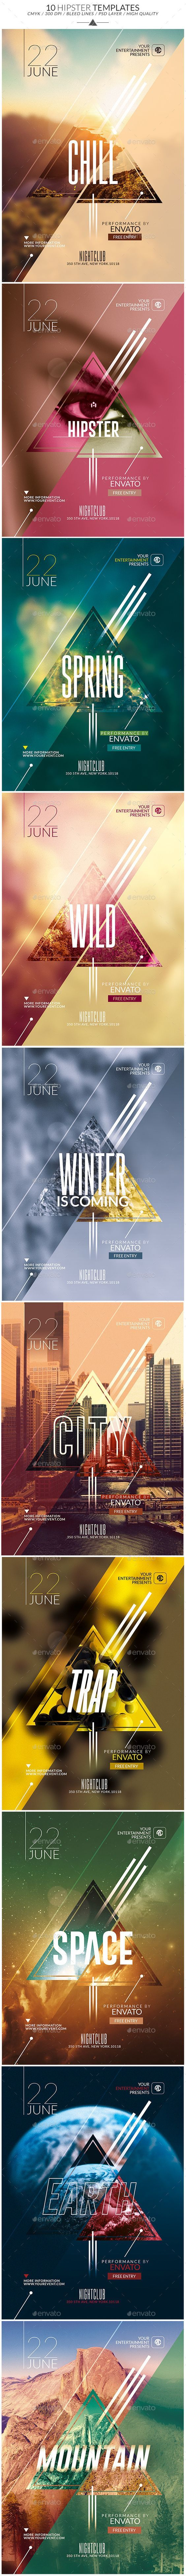 10 Minimal Hipster Party Flyers Template, Clean, Very easy to Edit and Creative Design perfect to promote your Event !